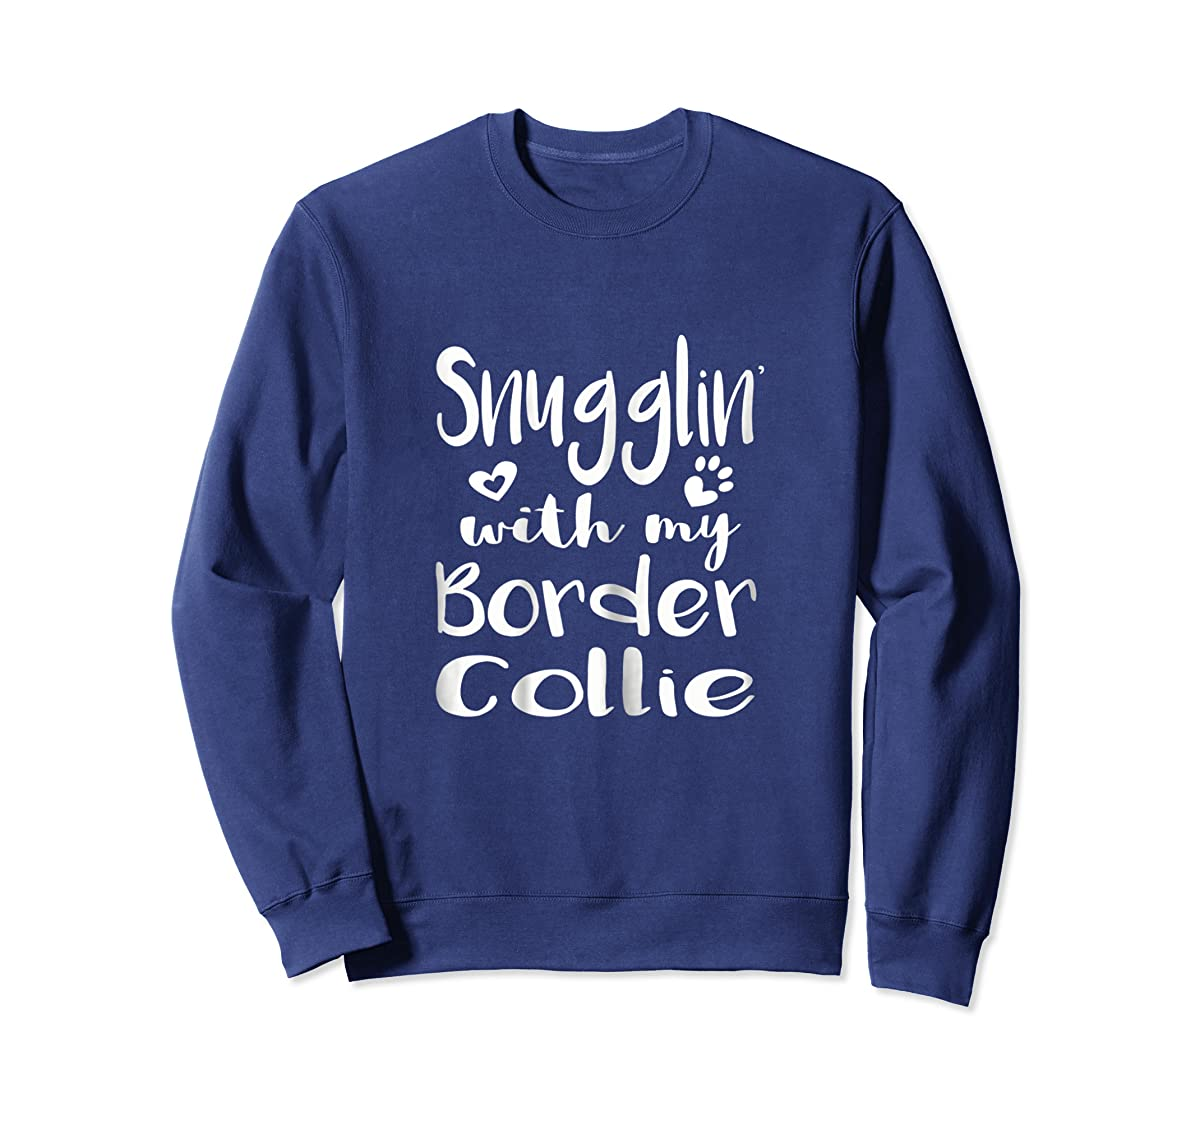 Snuggling with my Border Collie Shirt - Dog Mom pajamas-Sweatshirt-Navy